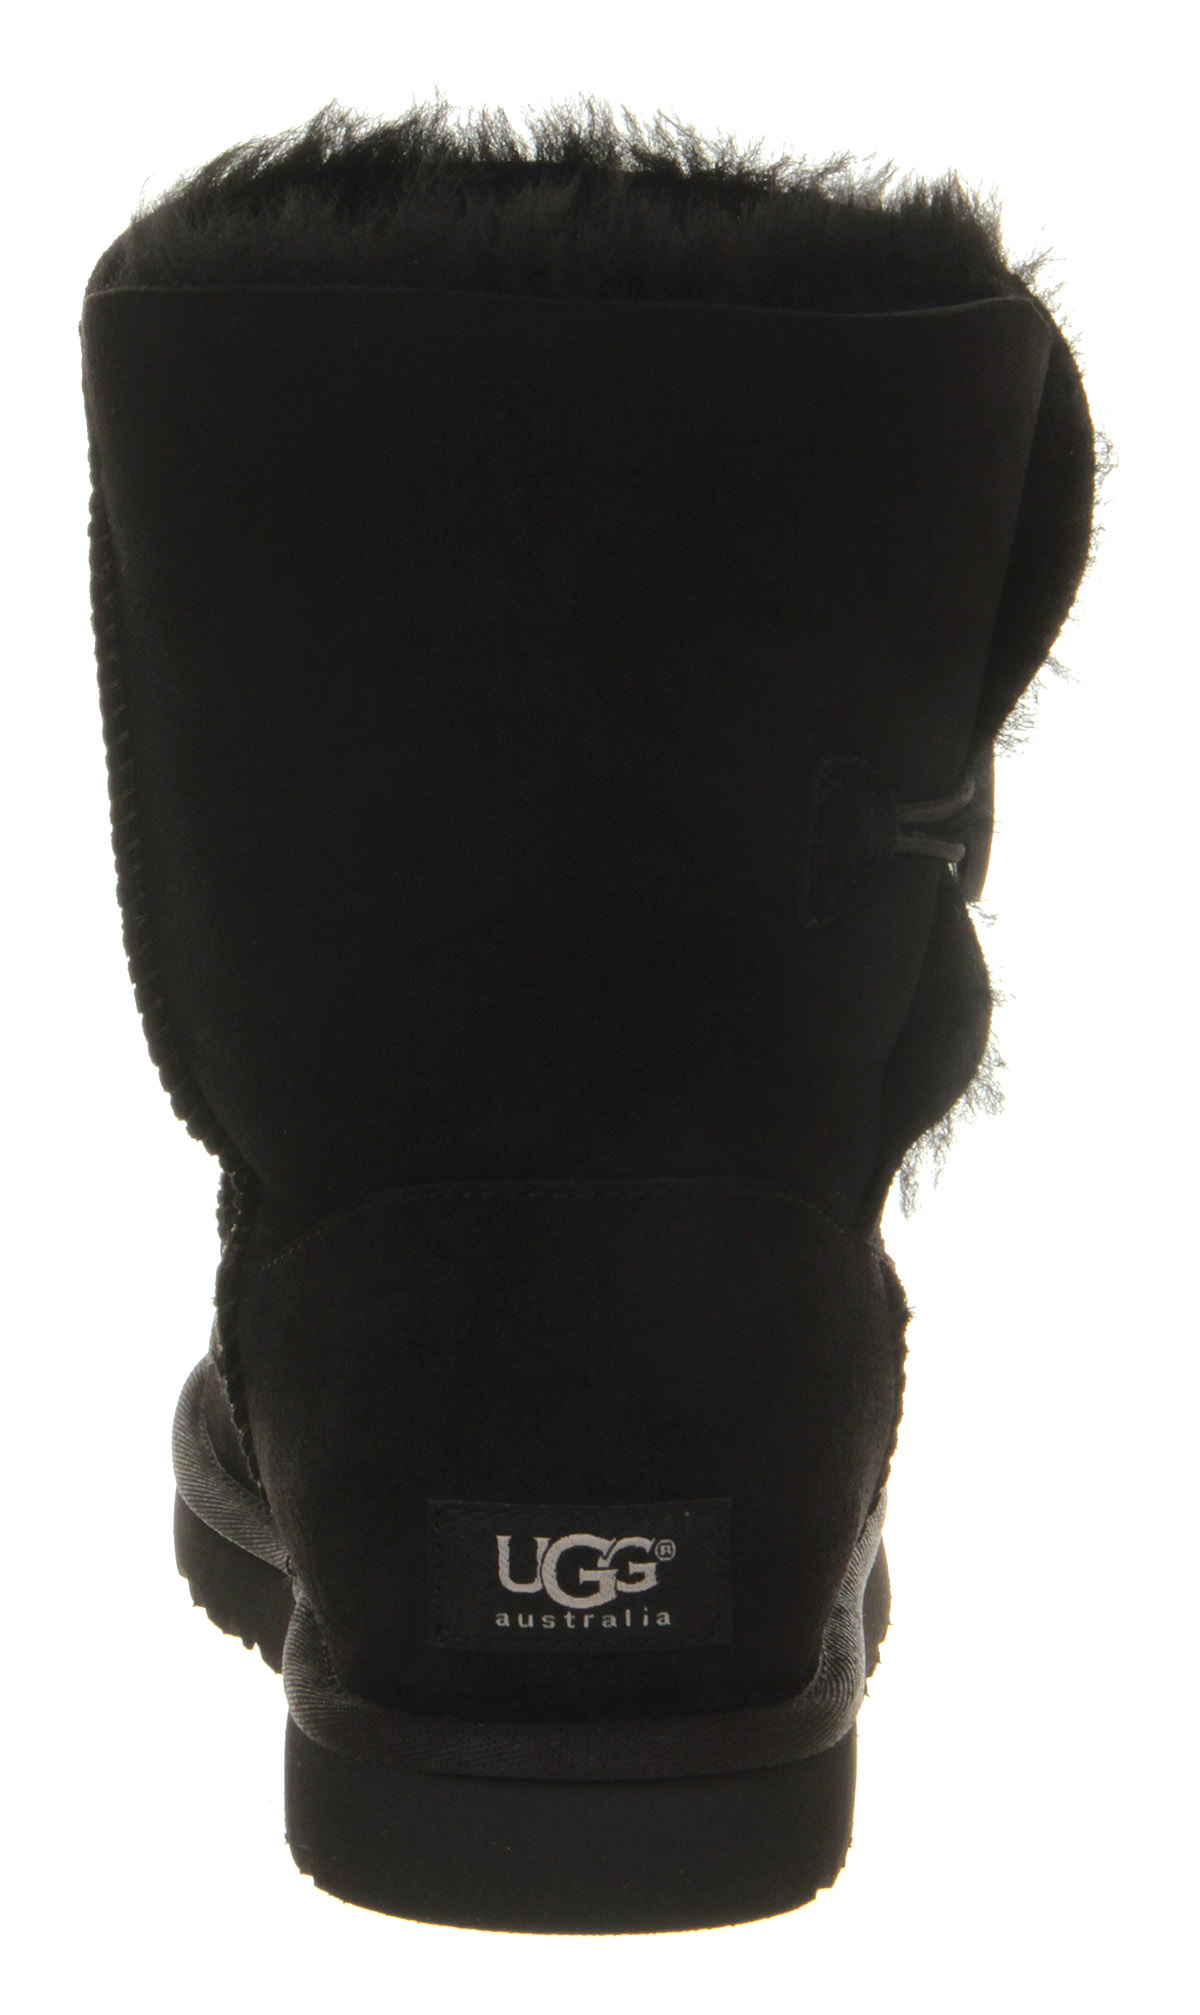 a2bf332b3fd Ugg Trainers House Of Fraser - cheap watches mgc-gas.com